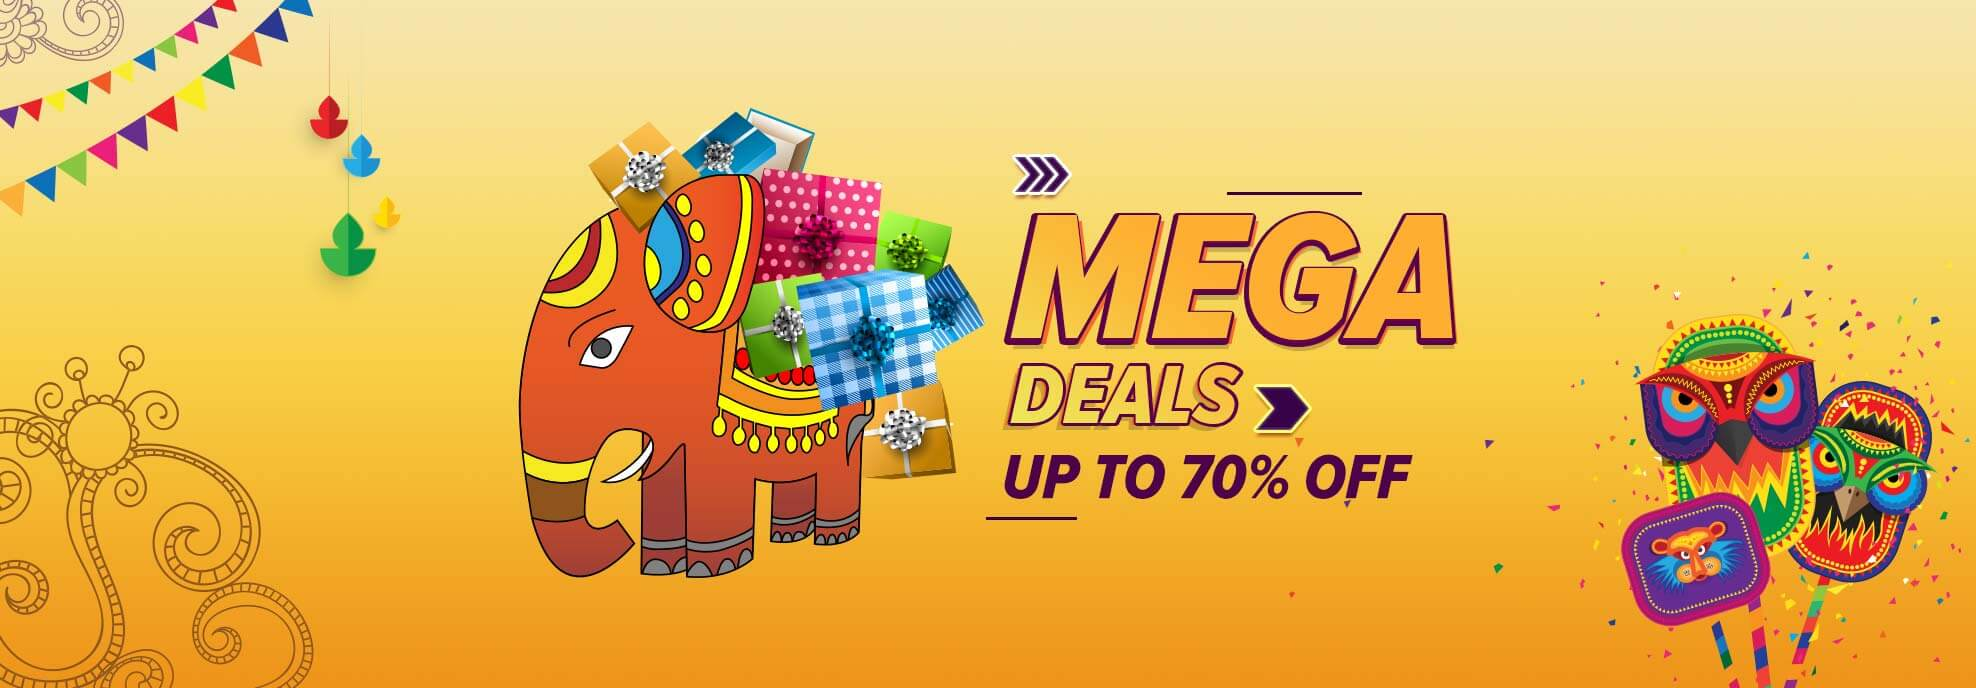 Daraz Mega Deals